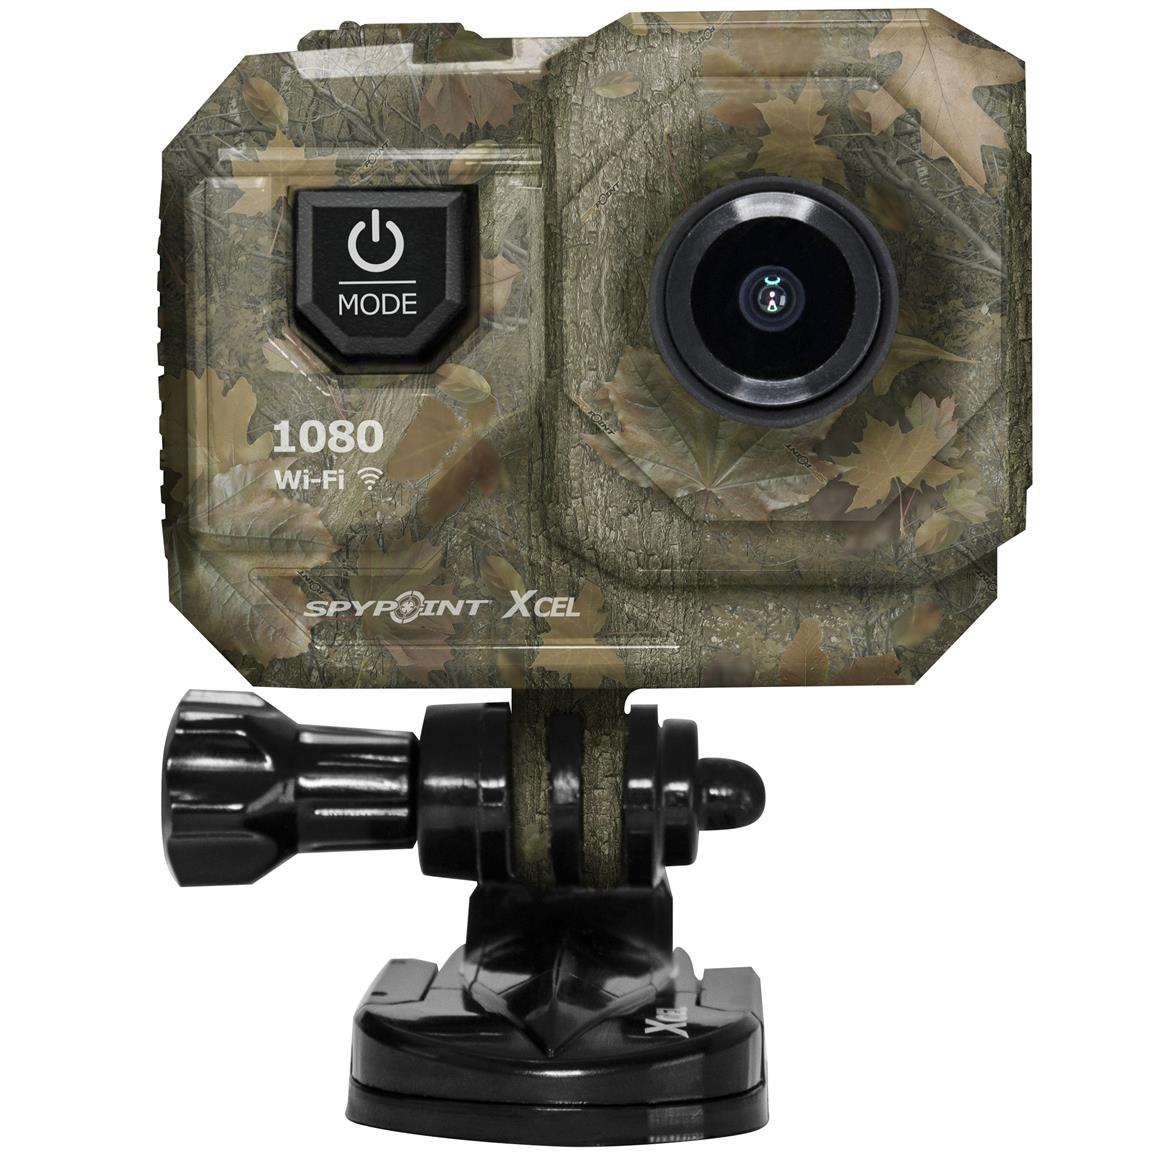 Spypoint XCEL 1080 HD Hunting Action Camera, 12 MP